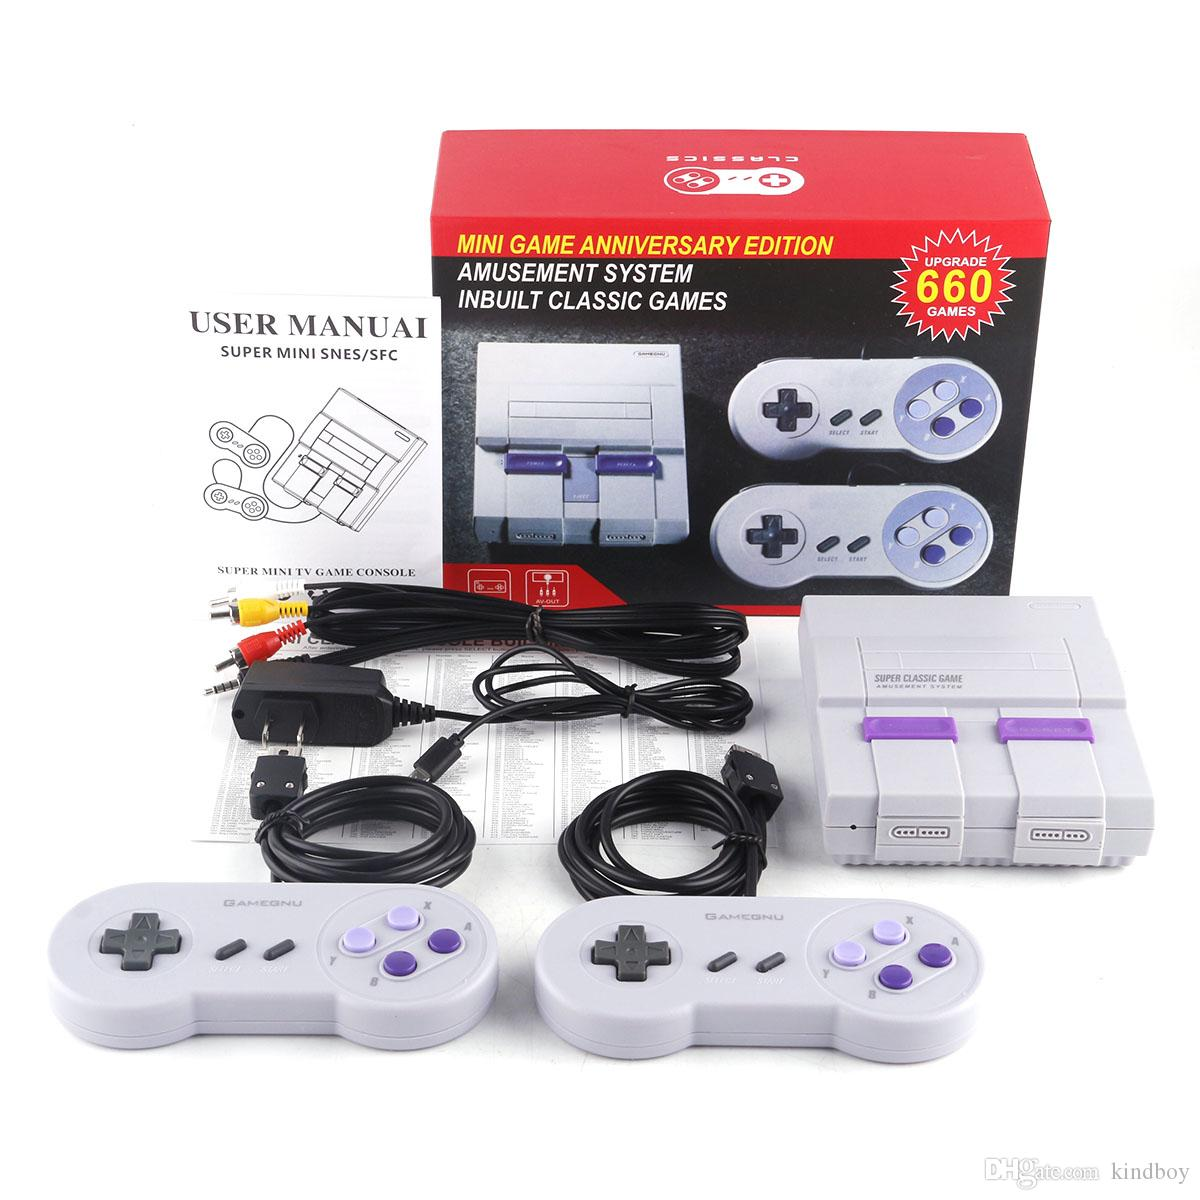 Mini Game Console Video Handheld for SNES games consoles with retail box FAST DELIVERY DHL from kindboy